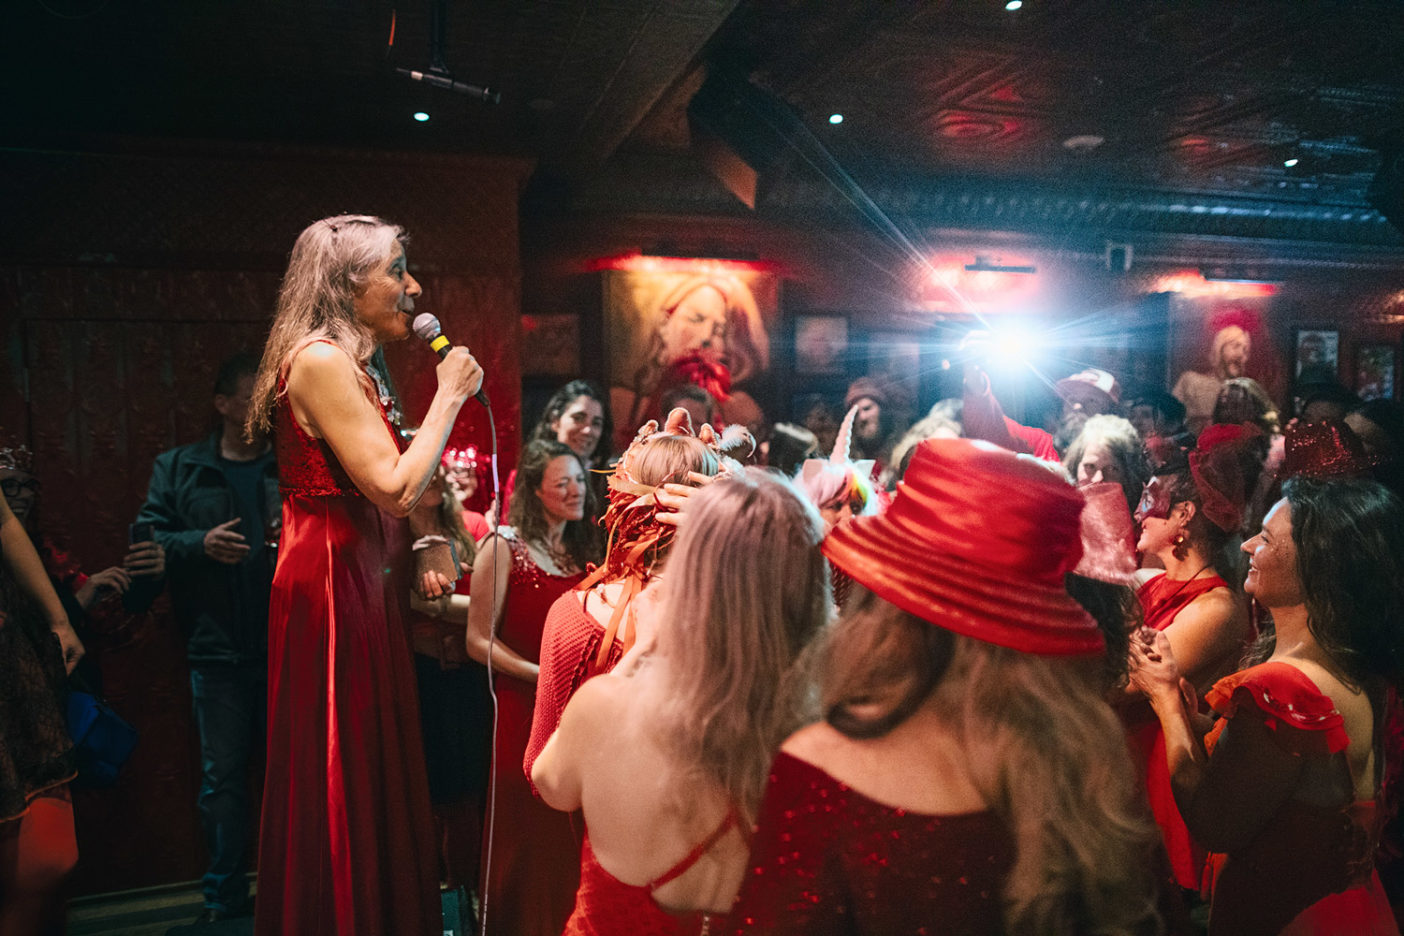 Sue Navy (Red Lady #11) has been actively involved in opposing the mine on Red Lady since 1977. At the 2019 Red Lady Salvation Ball in early March, the crowd excitedly awaits her announcement of who will be crowned Red Lady #42. Photo: Forest Woodward